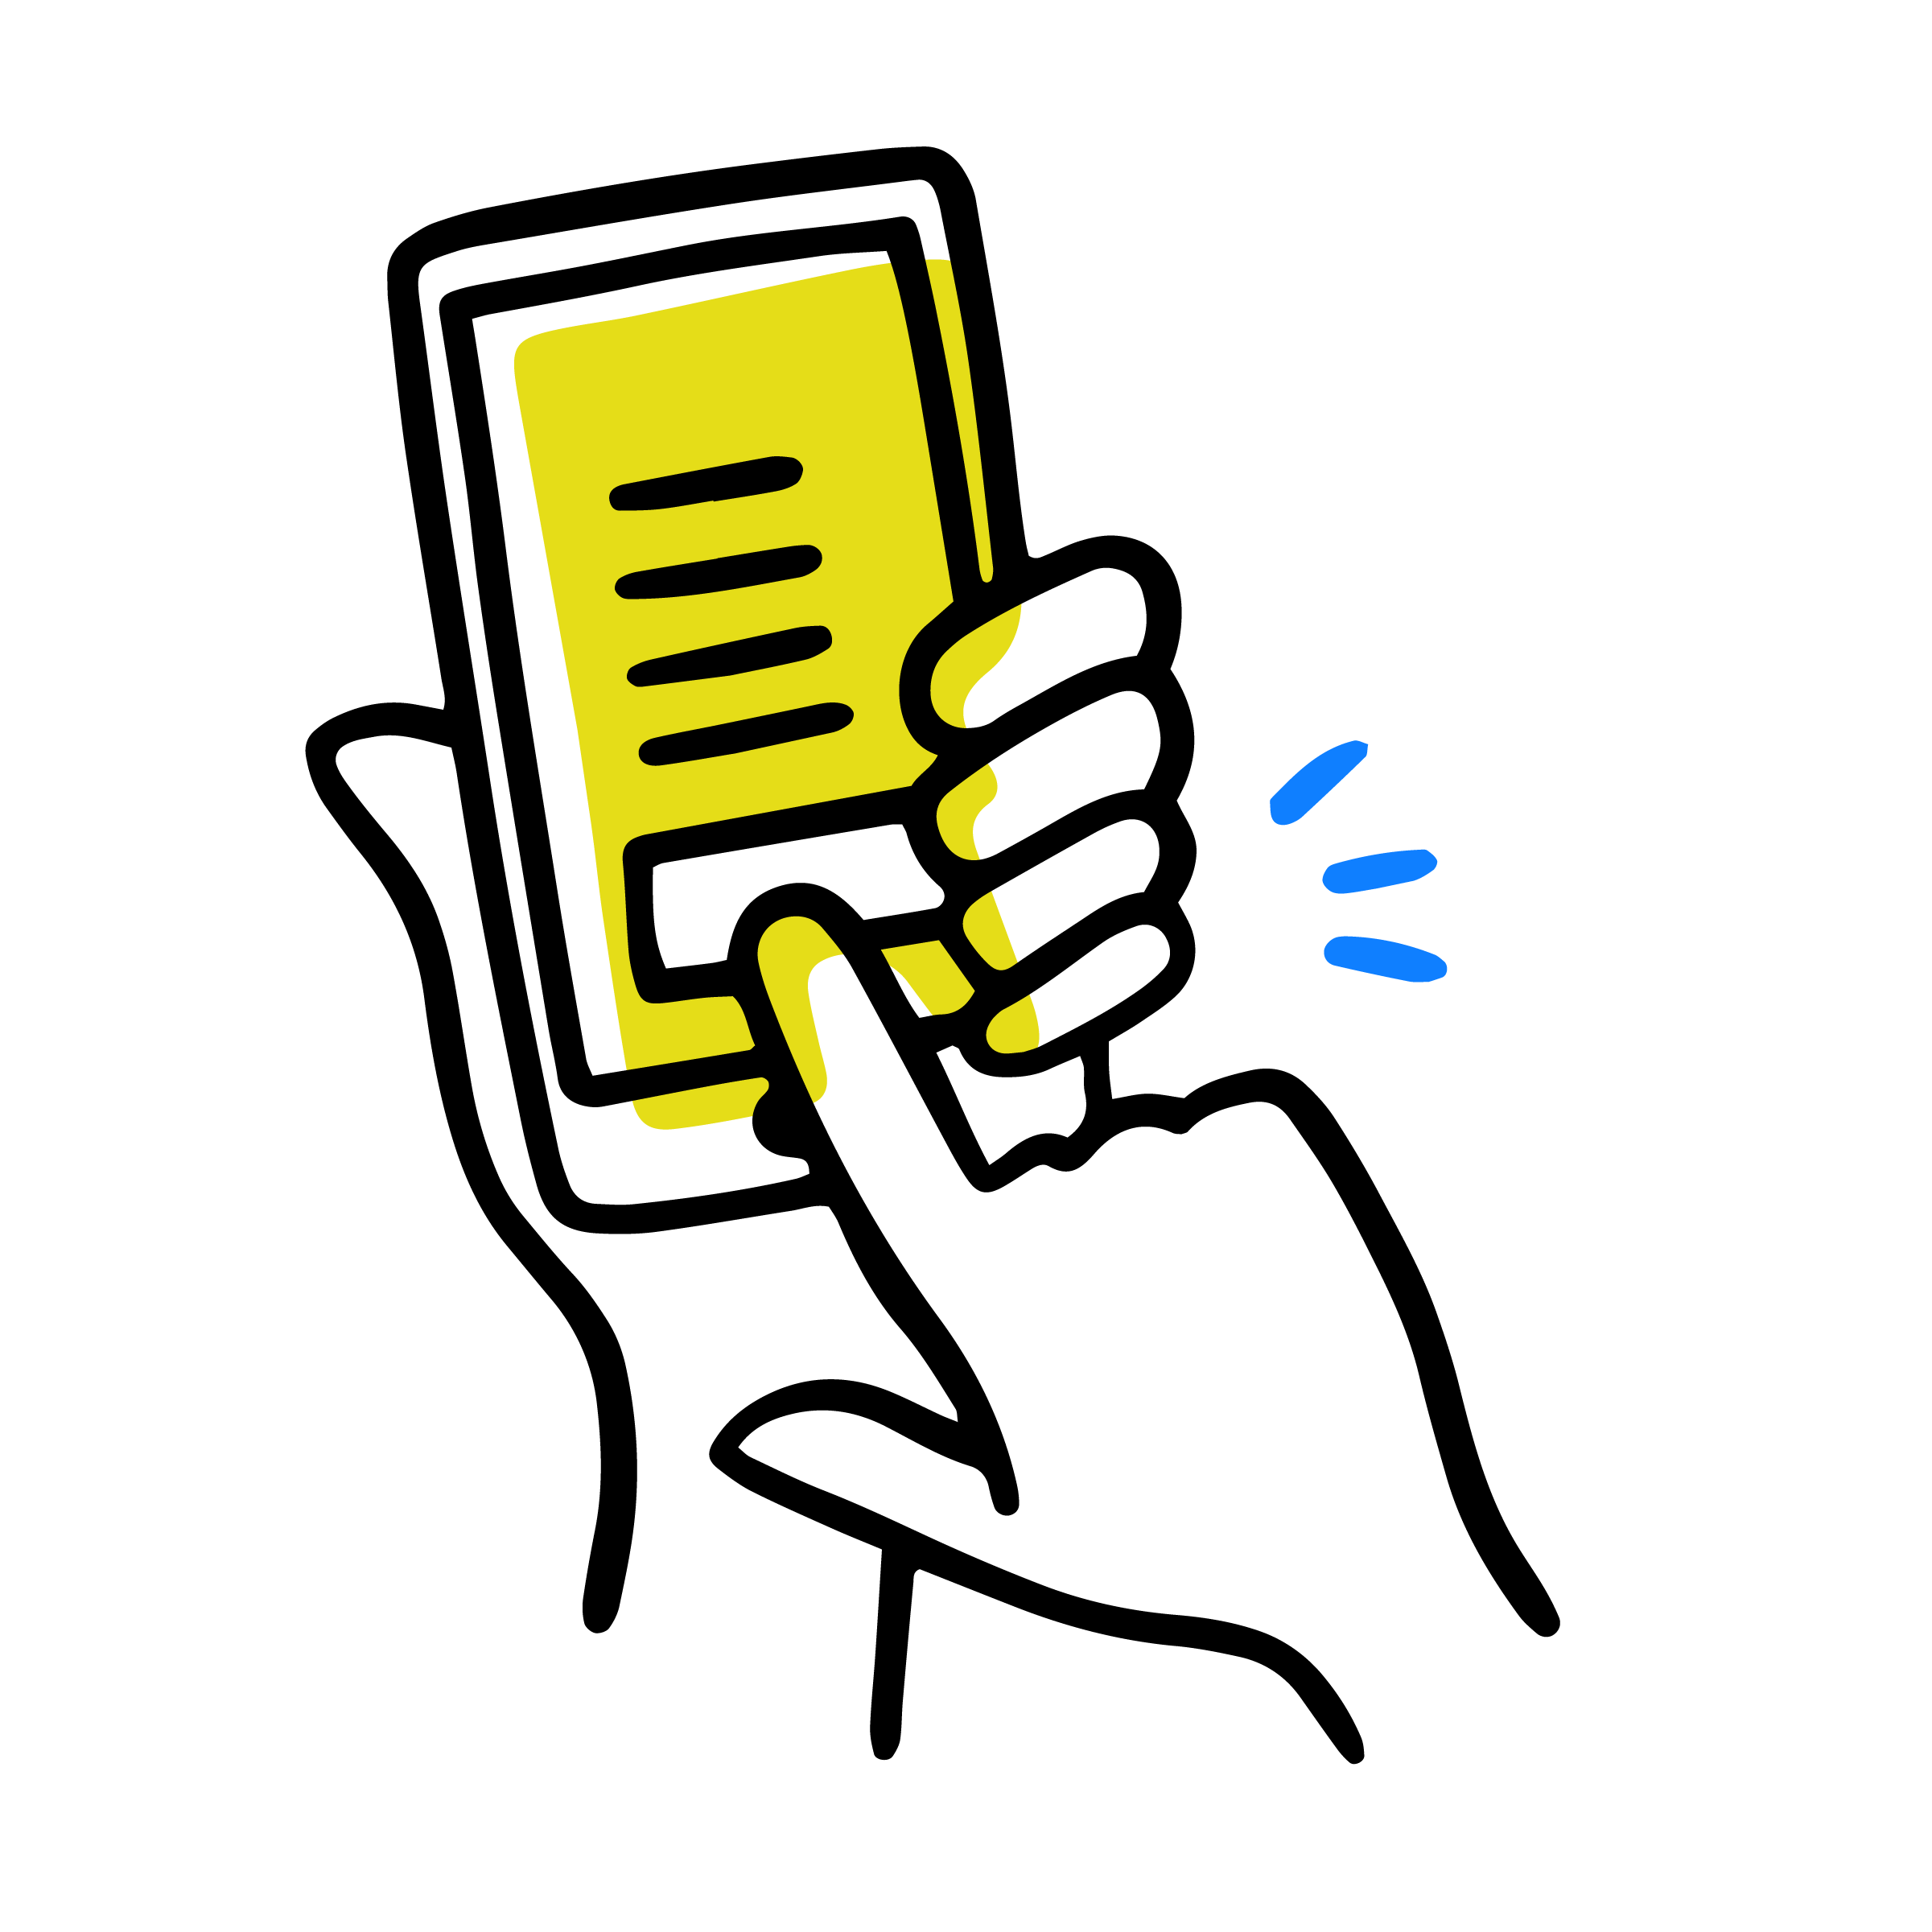 person looking at a yellow computer